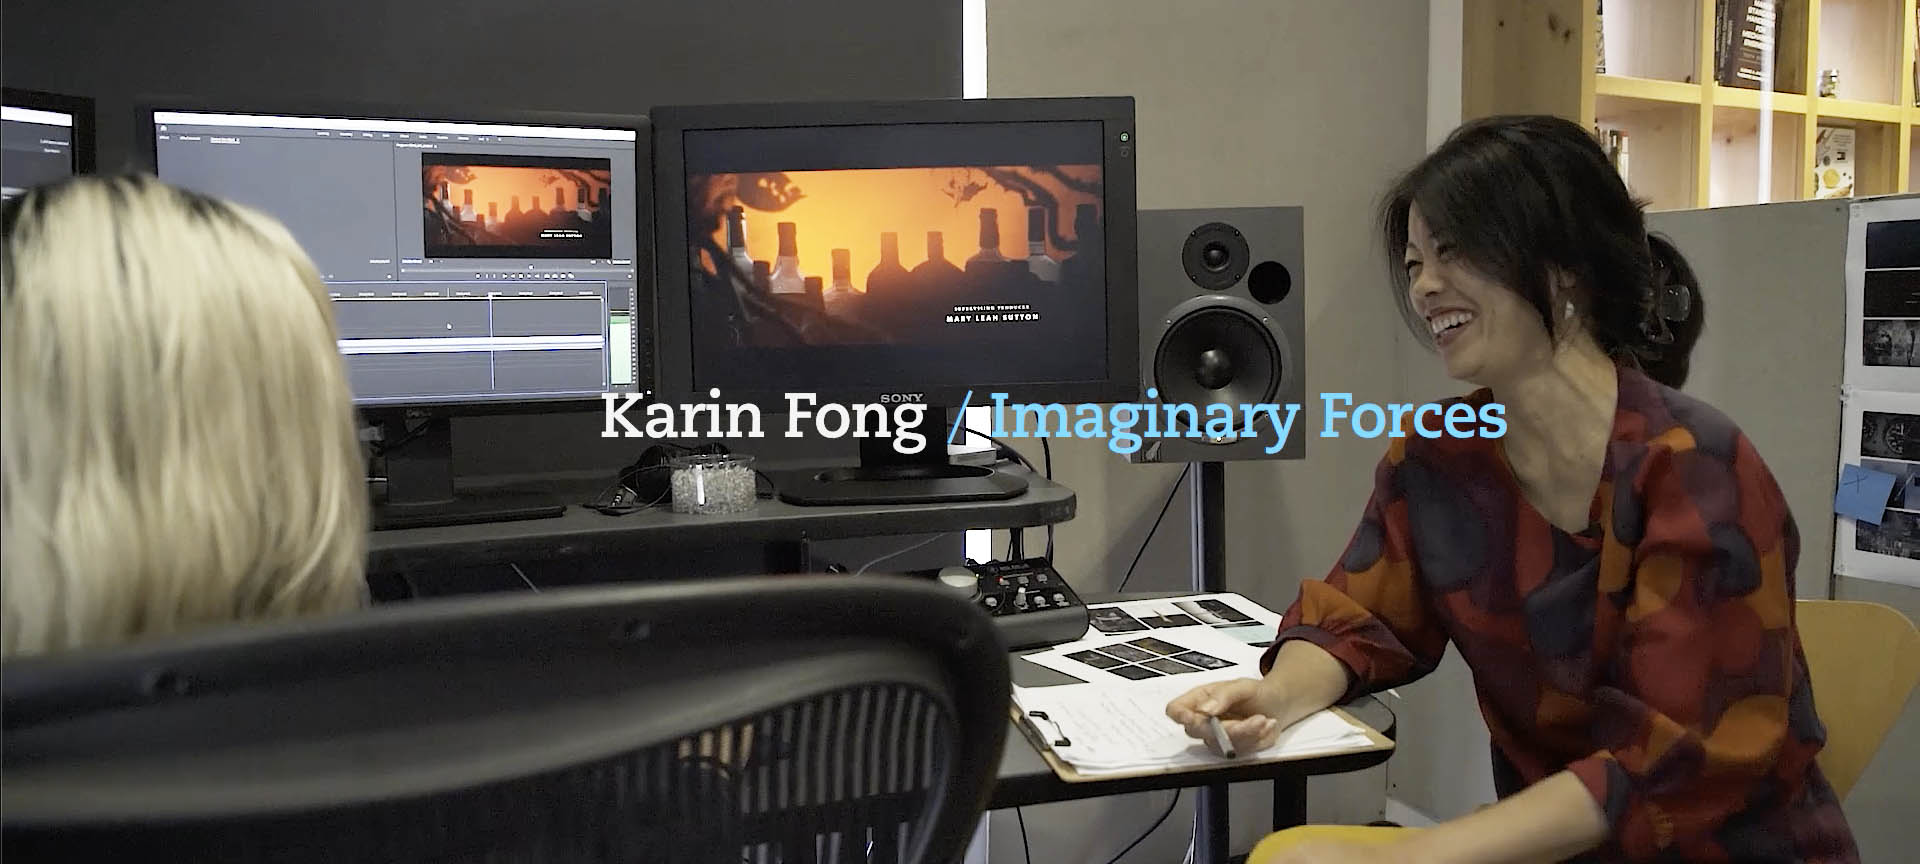 Karin Fong Title designer Imaginary Forces